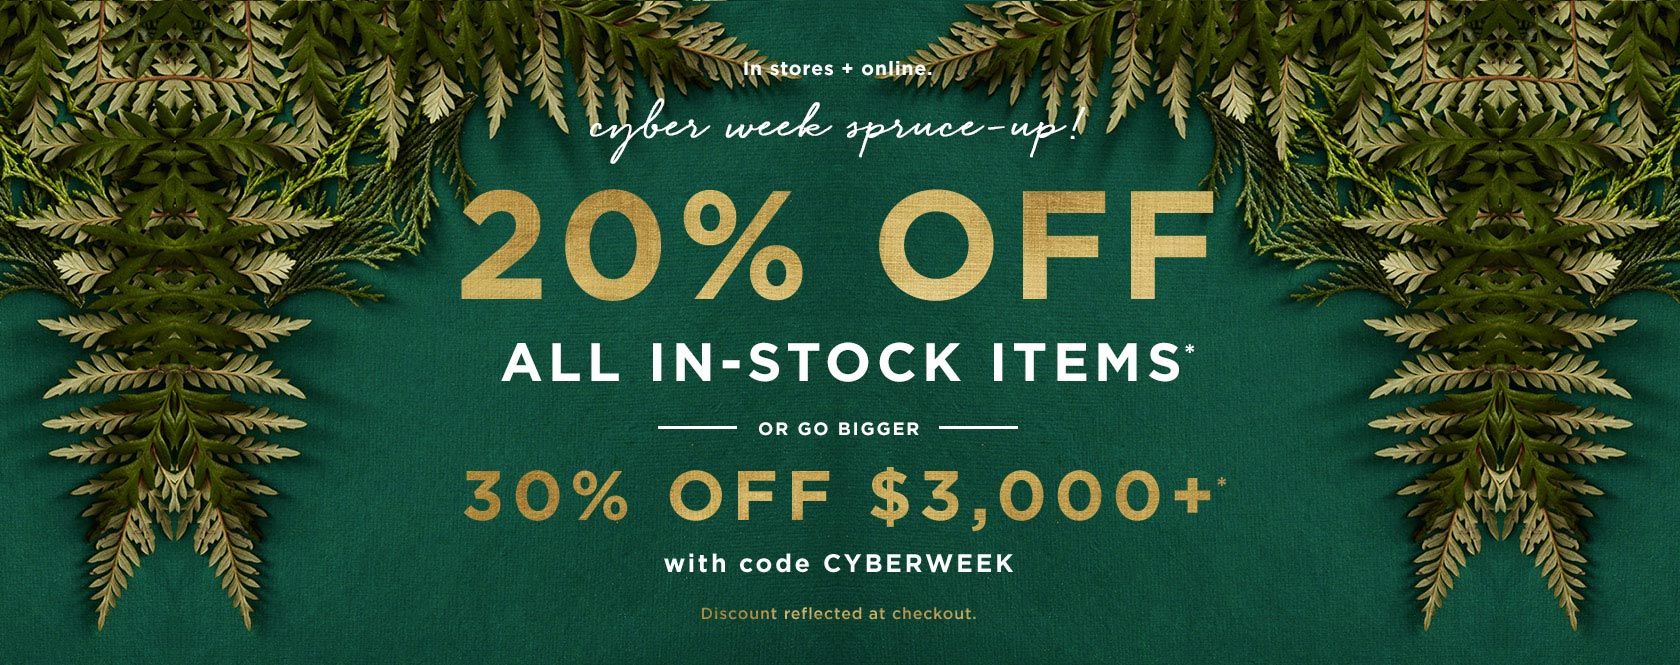 20% Off In-Stock Items. Prices As Marked. Or 30% Off $3000+ With Code CYBERWEEK